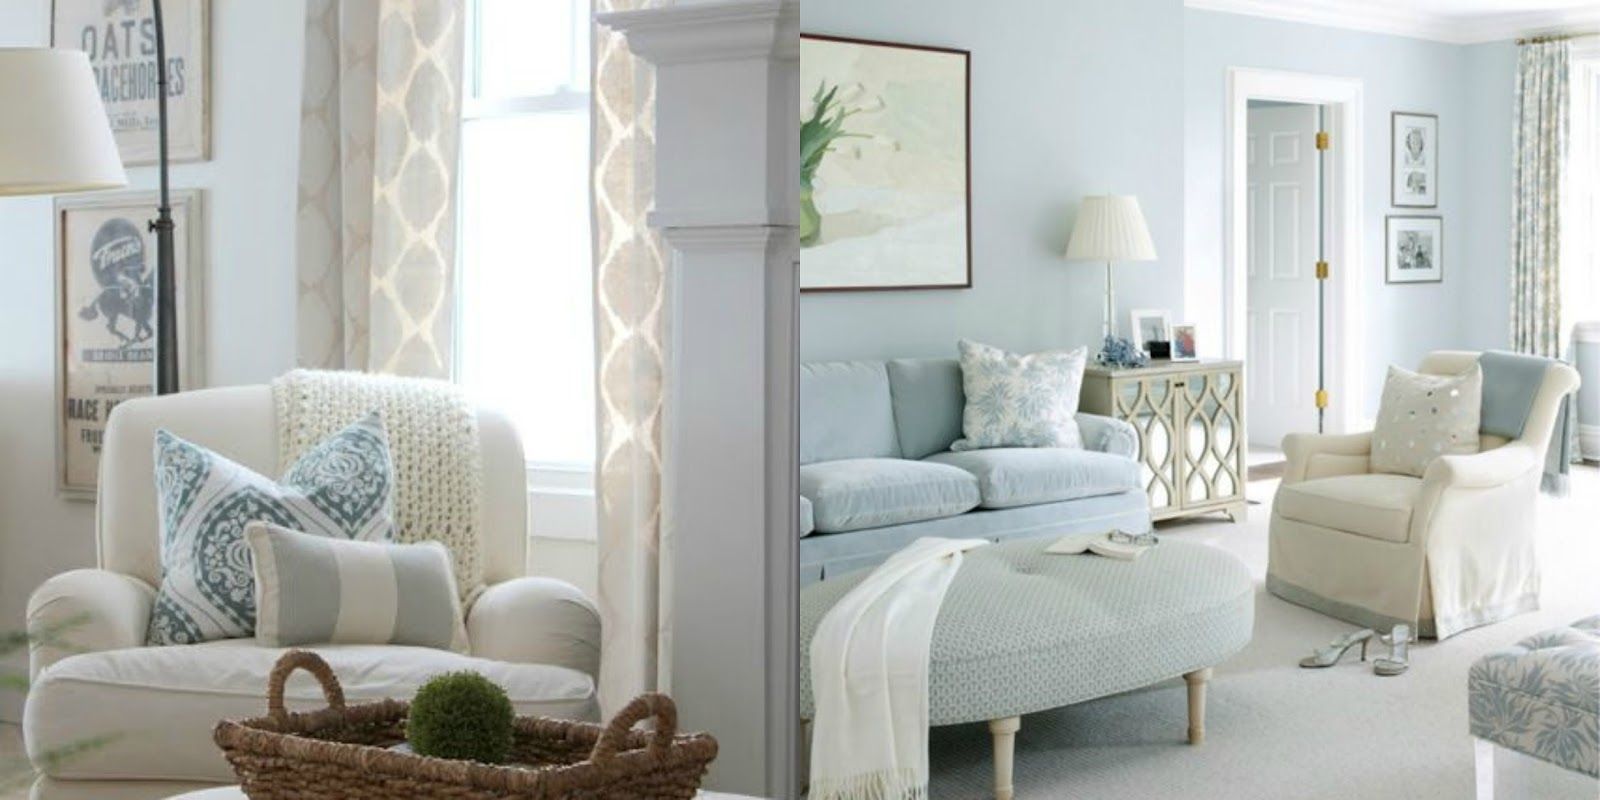 Pin by Rachel Song on living room | Blue bedroom decor ...